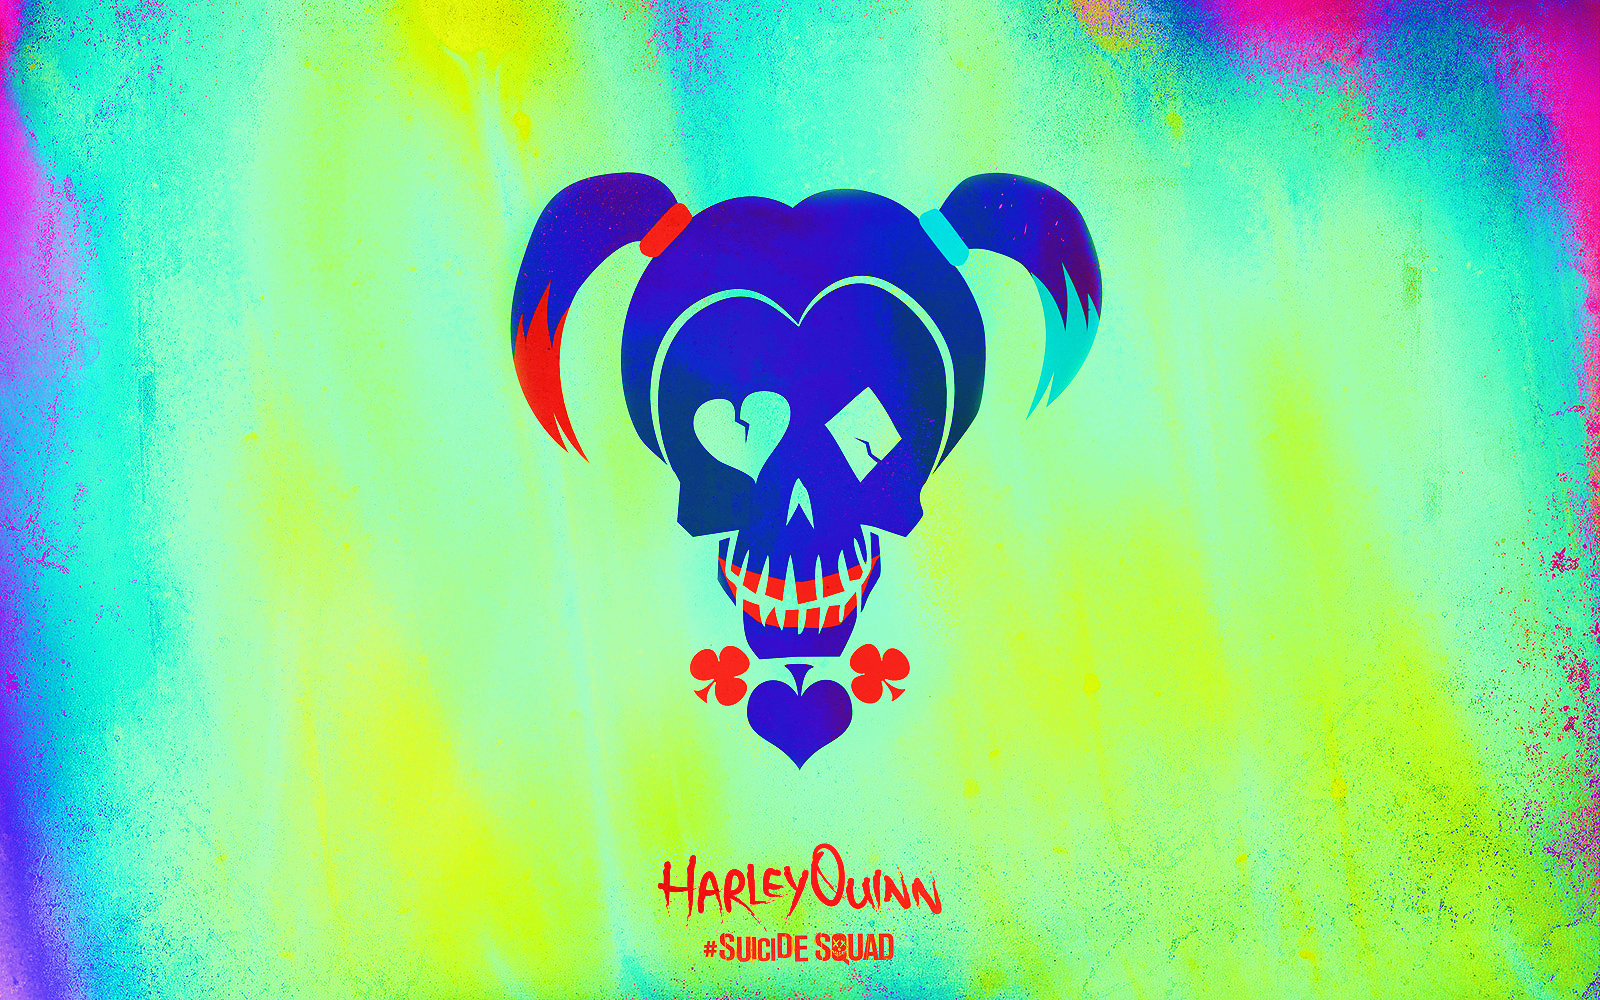 Suicide Squad Skull Обои - Harley Quinn